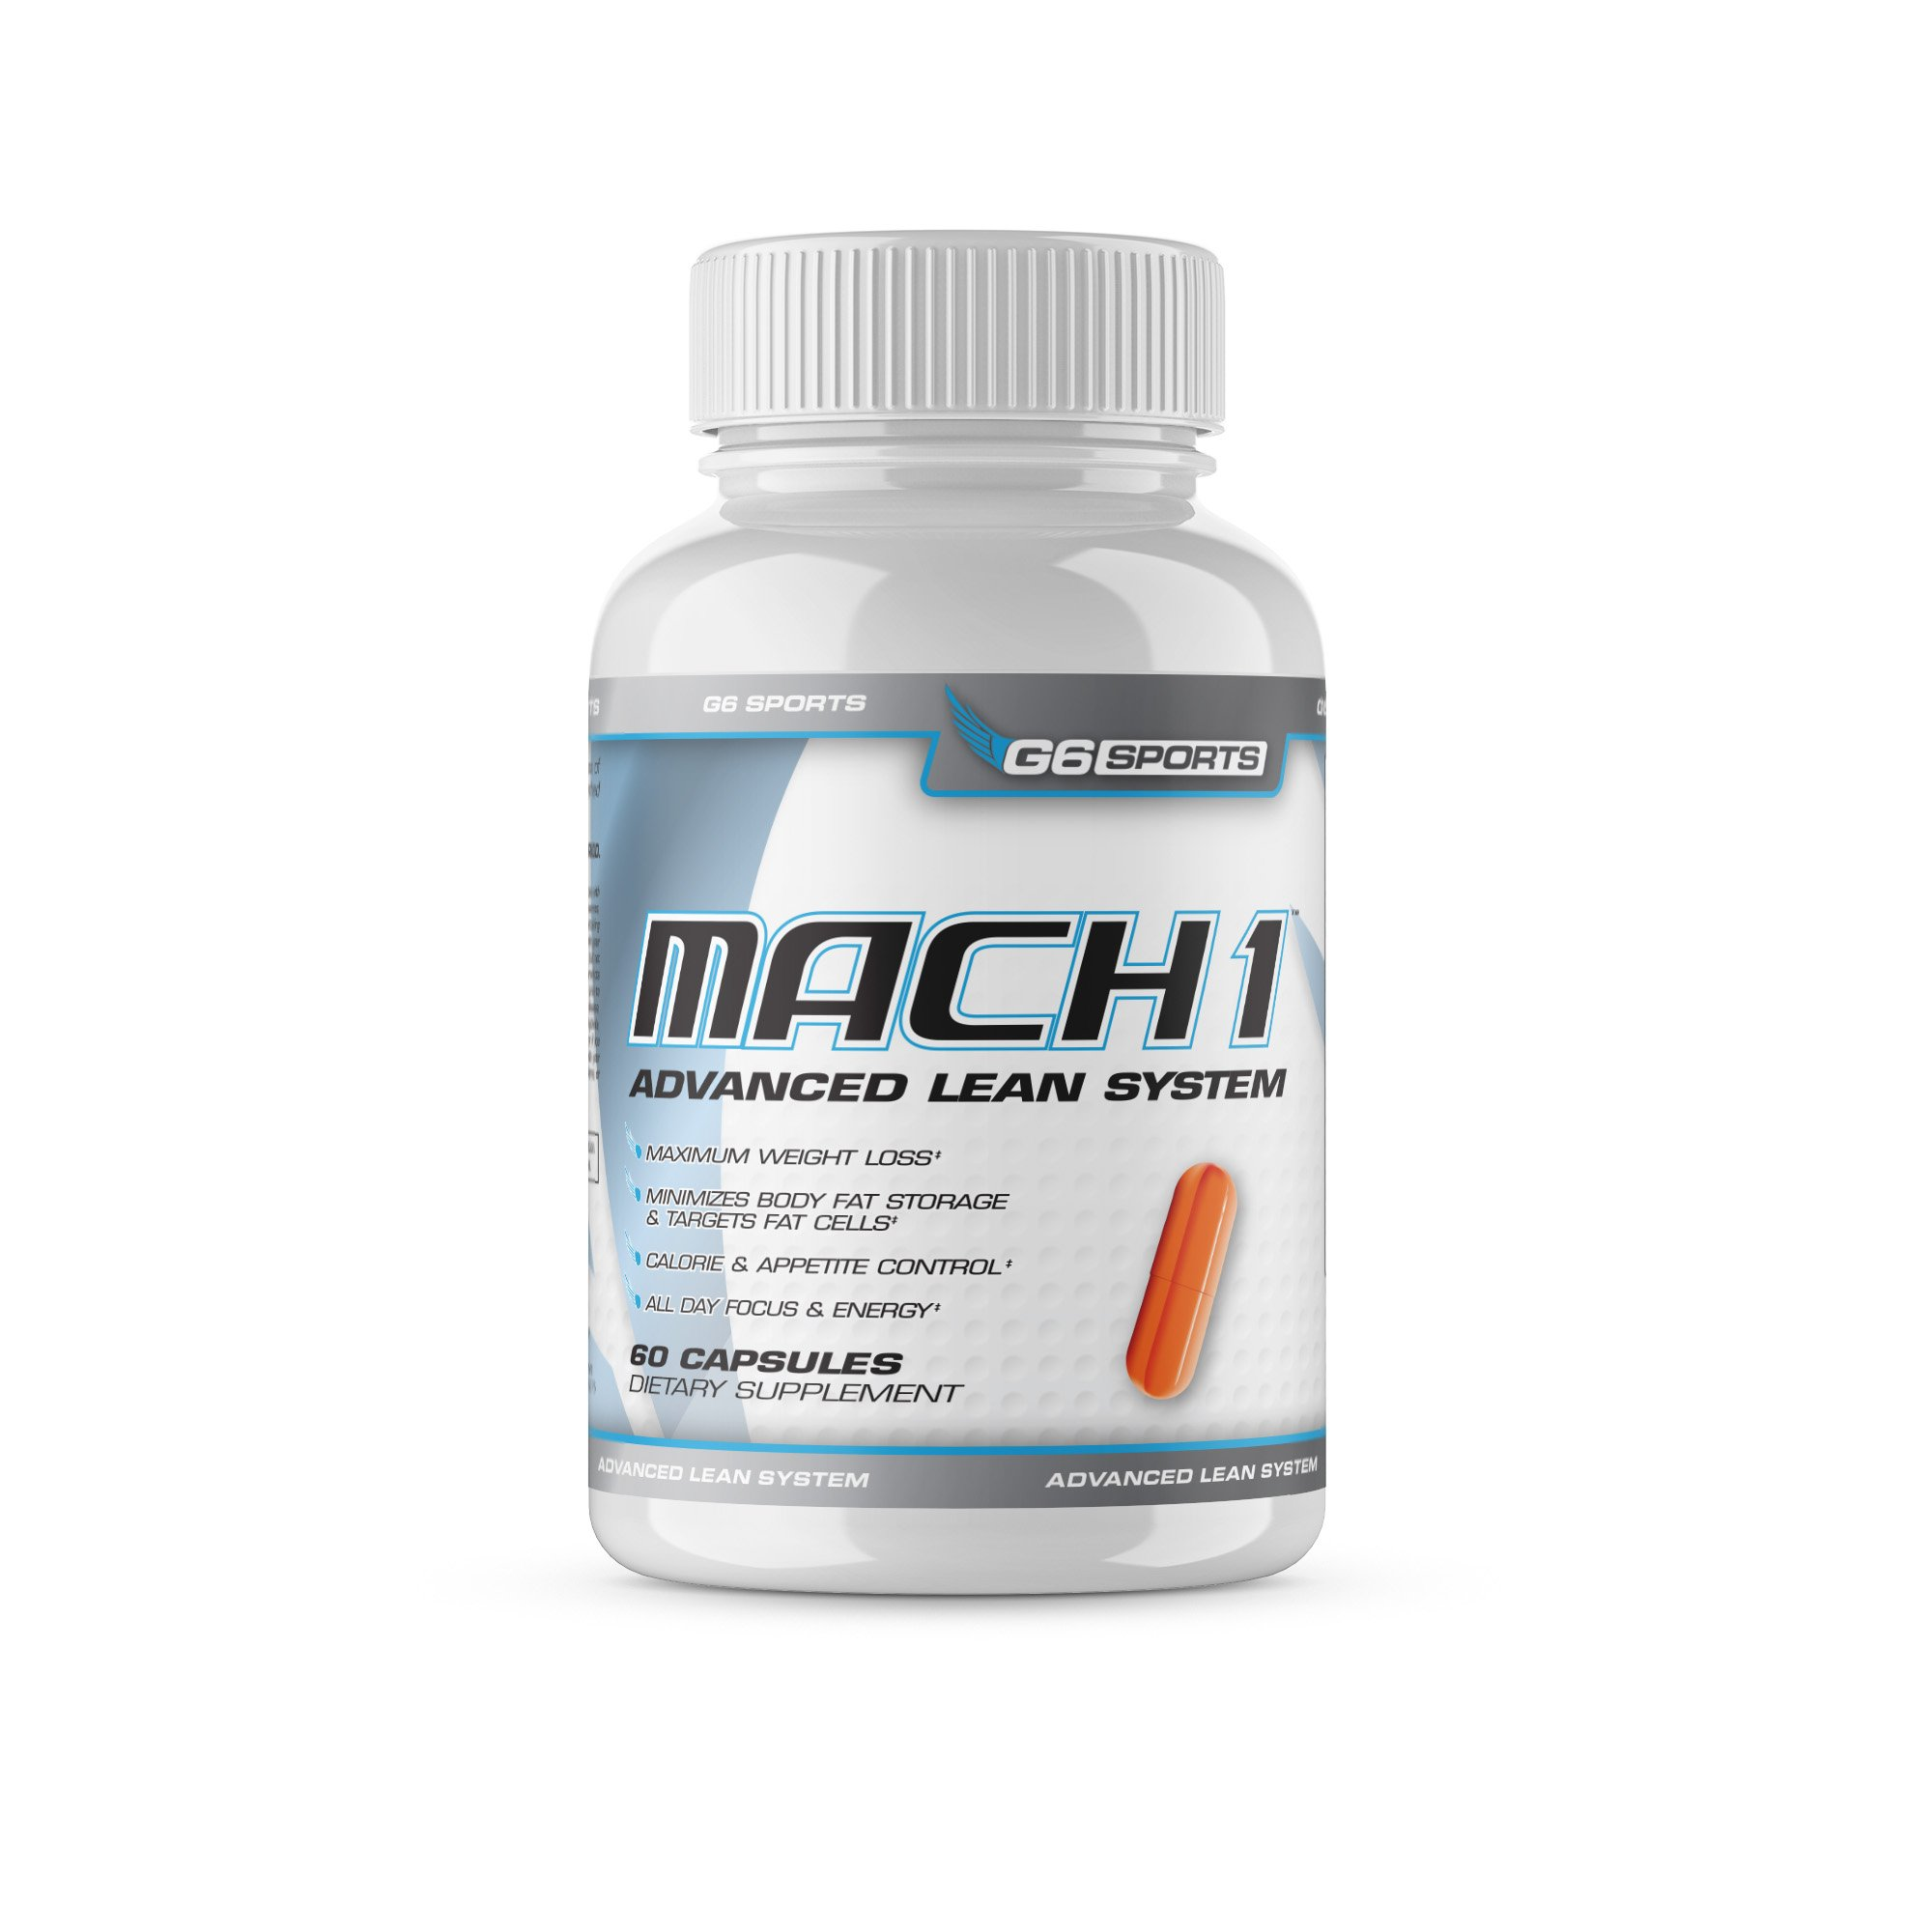 G6 Sports Nutrition Mach 1 Advanced Lean System (Patented Ingredients, Target Fat Cells, No Crash or Jitters) - 60 Capsules by G.Sports (Image #1)